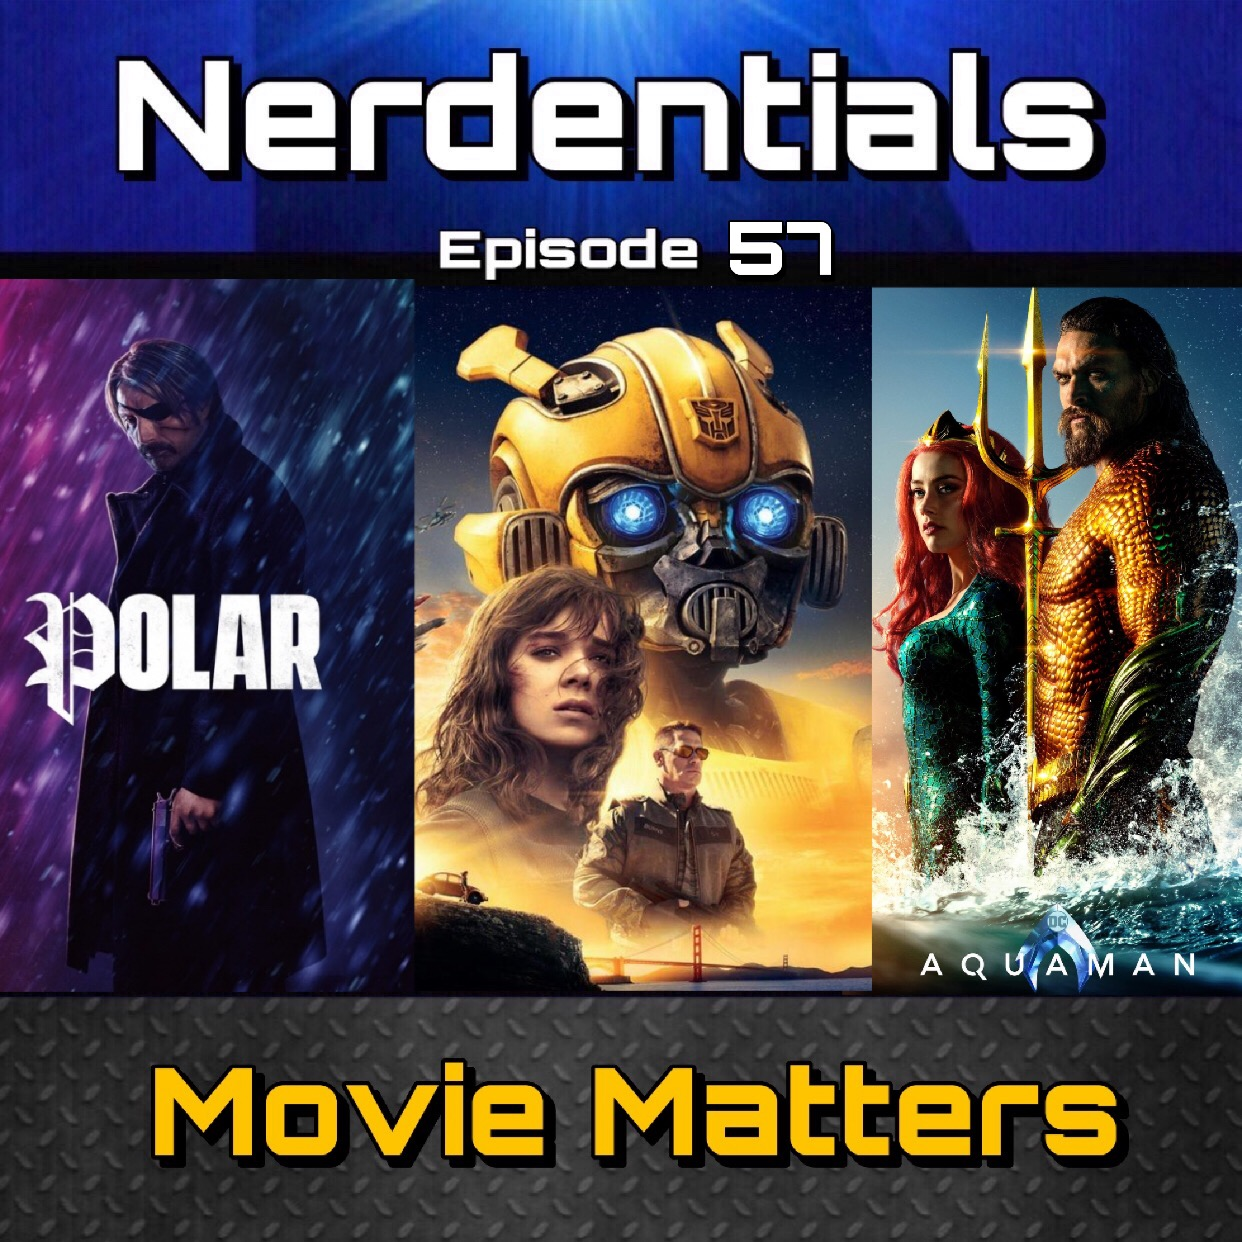 - Welcome to Nerdentials! Your weekly dose of the nerdy essentials. Covering Film, TV, Video Games and Comics.This week, your nerdy hosts Joe, Matt, Nick and Lynn Review a handful of recent films. Matt gives us his thoughts on Aquaman, Bumblebee and the Netflix Original Film,